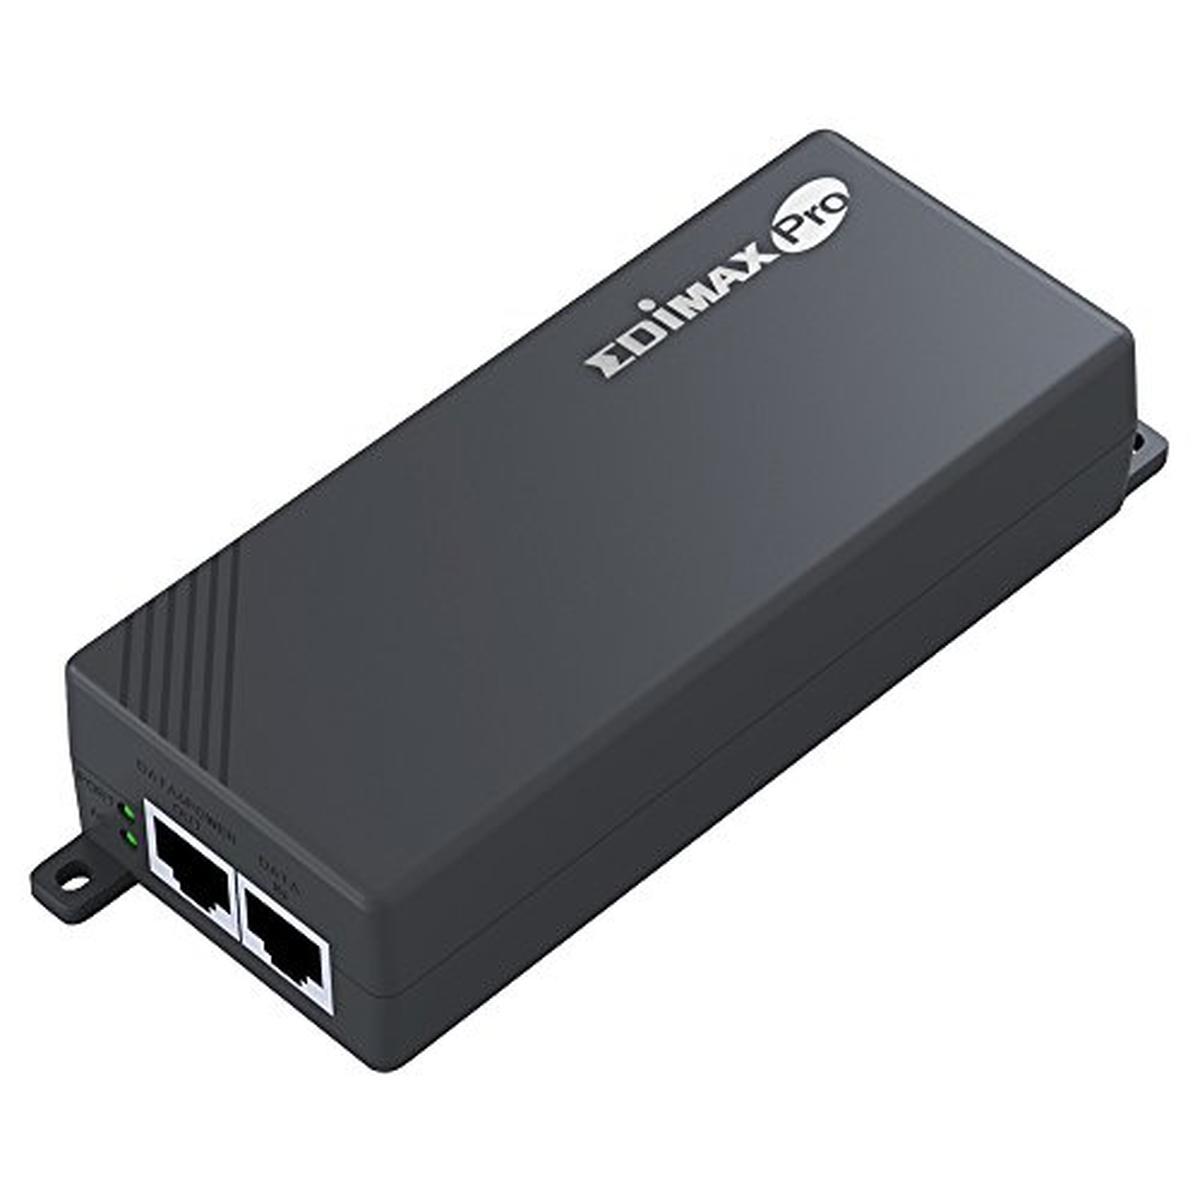 Edimax GP-101IT IEEE 802.3at Gigabit PoE+ Injector